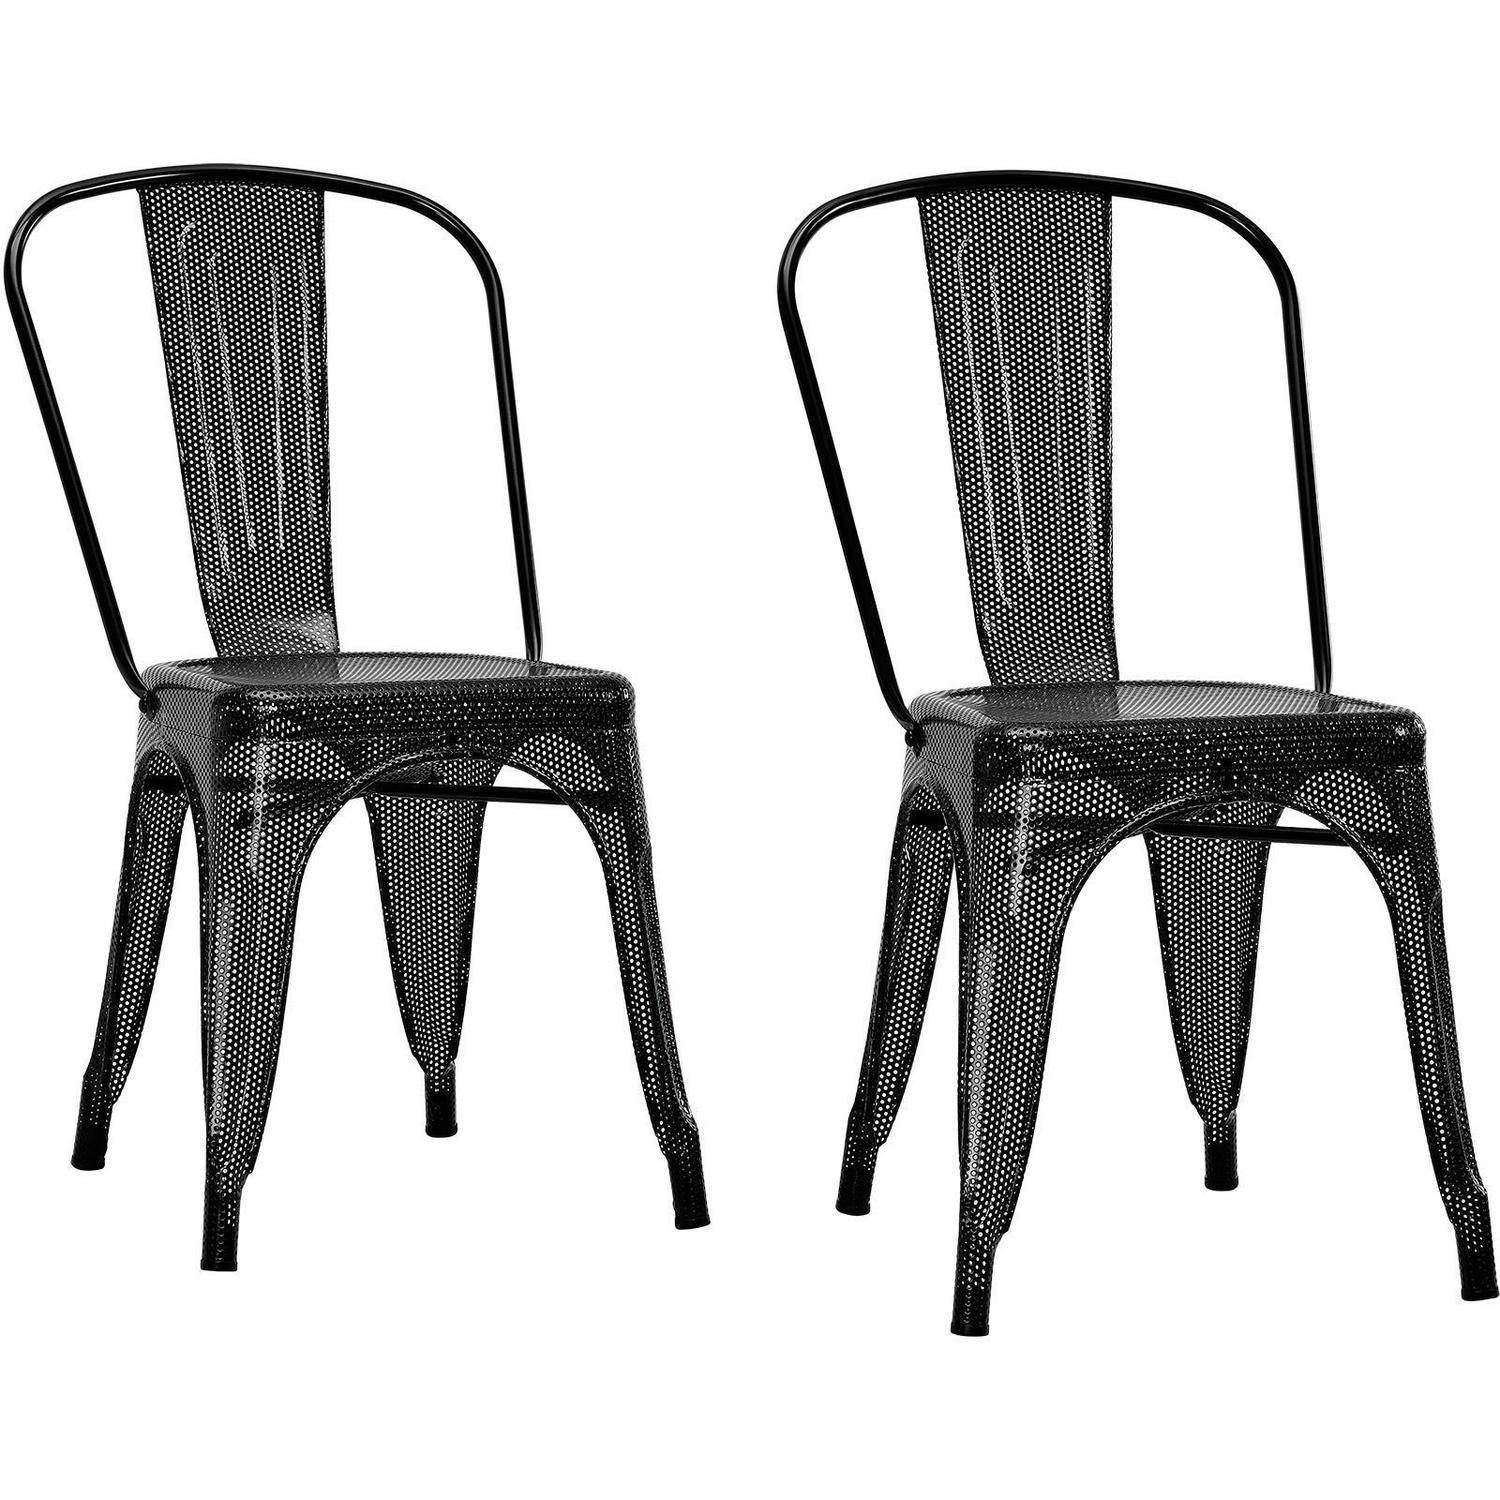 Black Metal Dining Chairs metal dining chairs - walmart